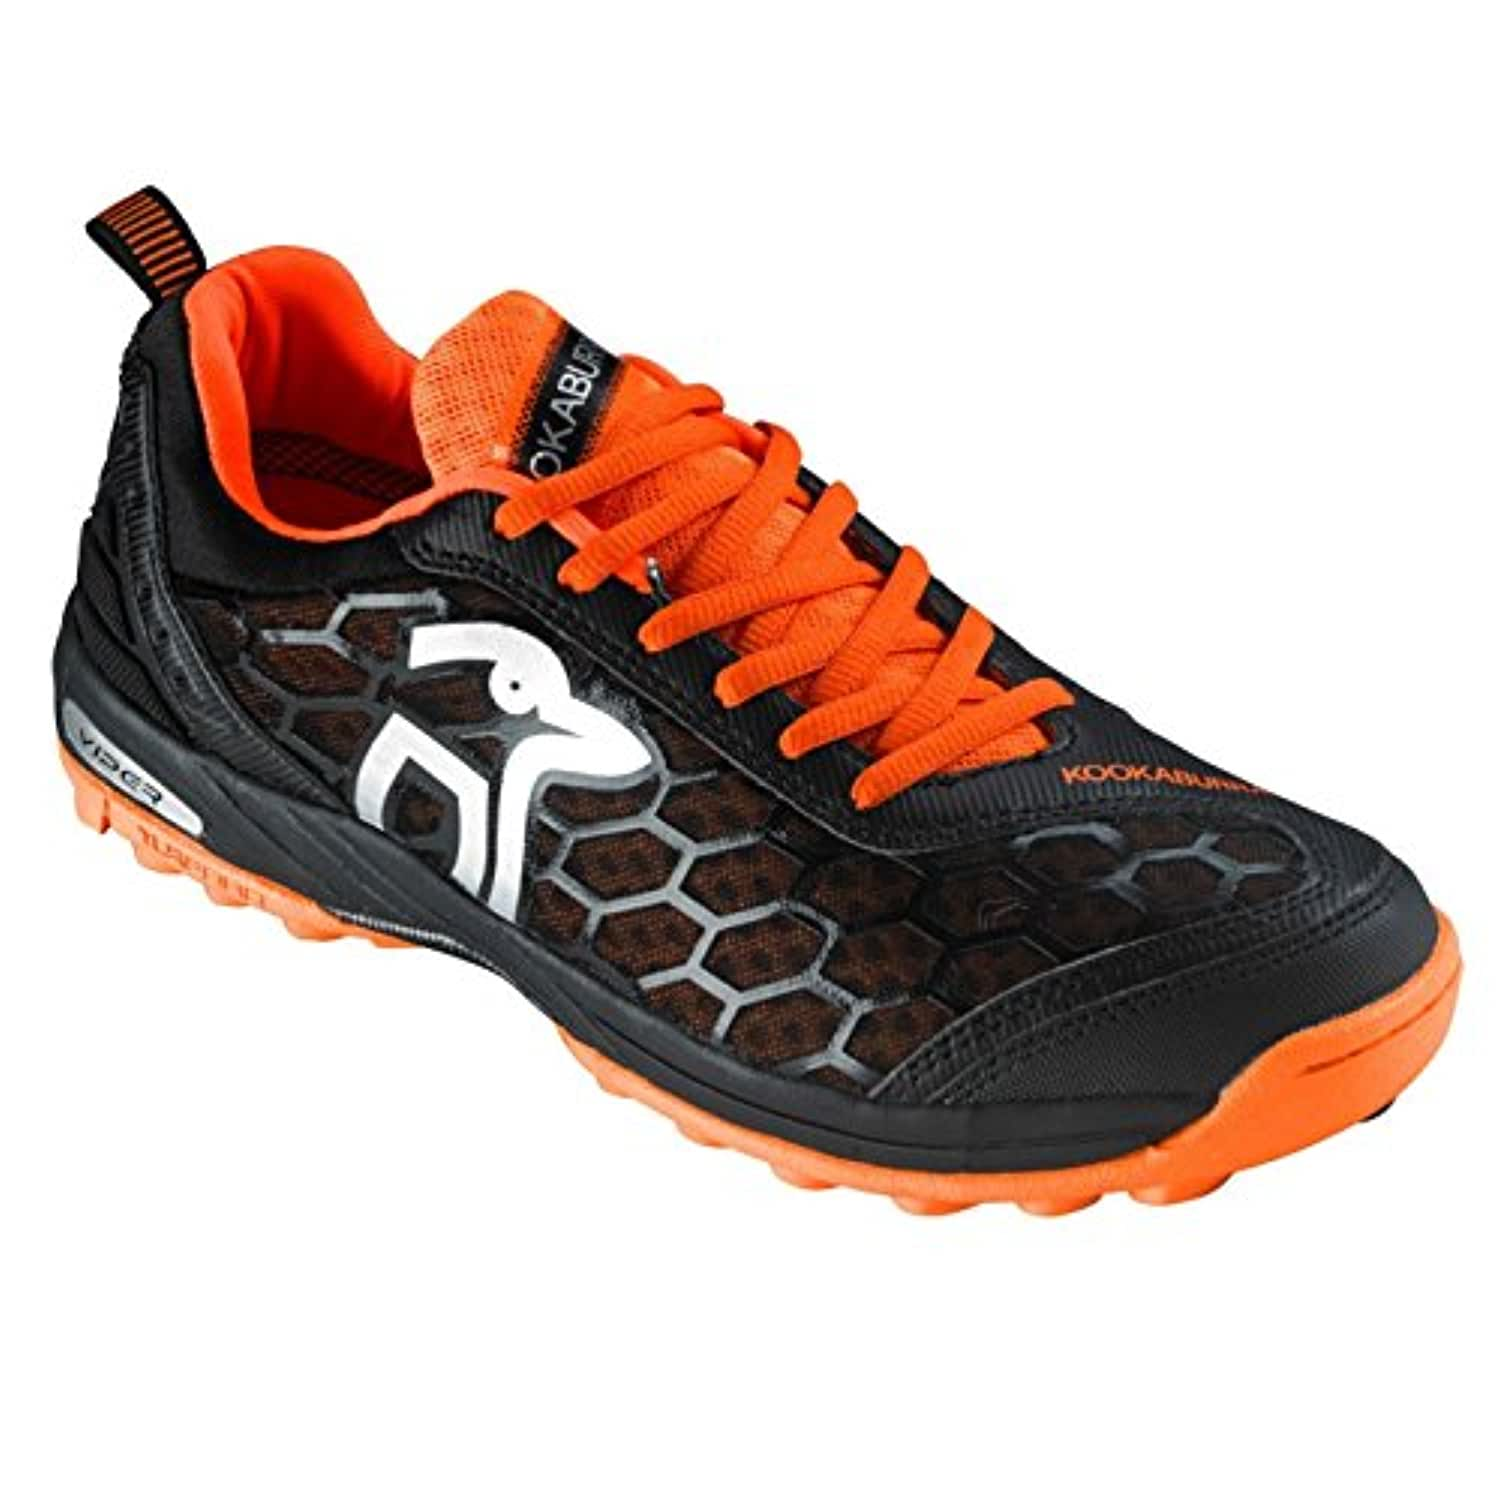 Kookaburra Viper Hockey Shoes Juniors Black/Orange Astro Turf Trainers Sneakers (UK 4) (EU 37)